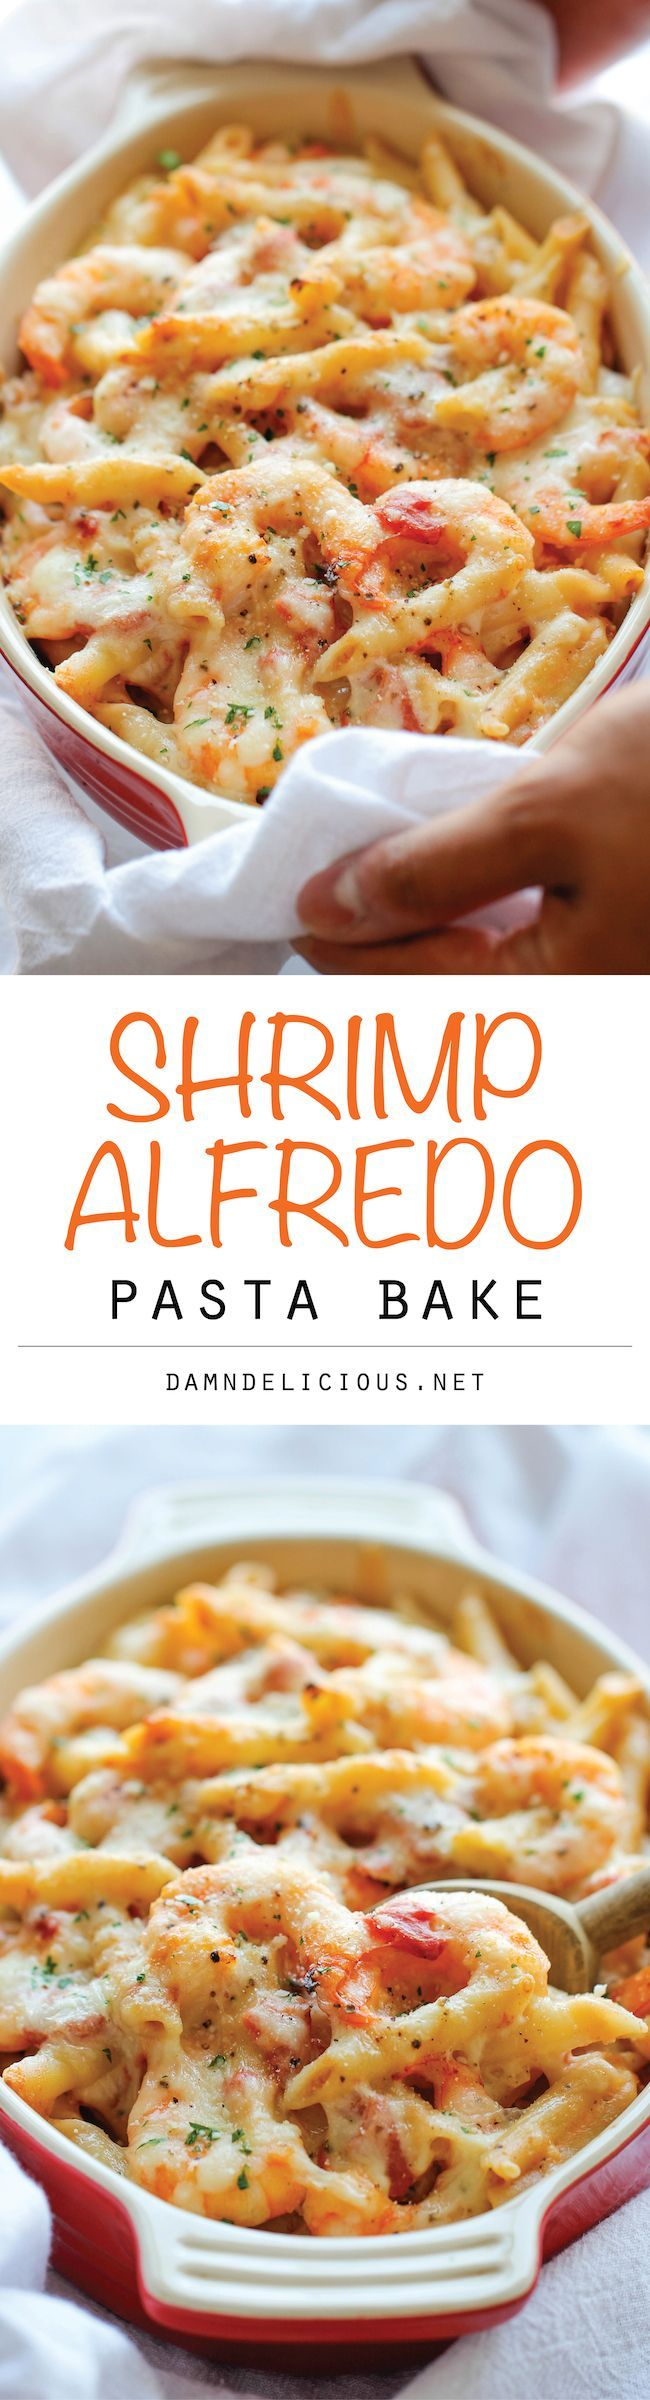 Skinny Shrimp Alfredo Pasta Bake - An unbelievably cheesy, creamy lightened-up pasta bake that you can easily make ahead of time!